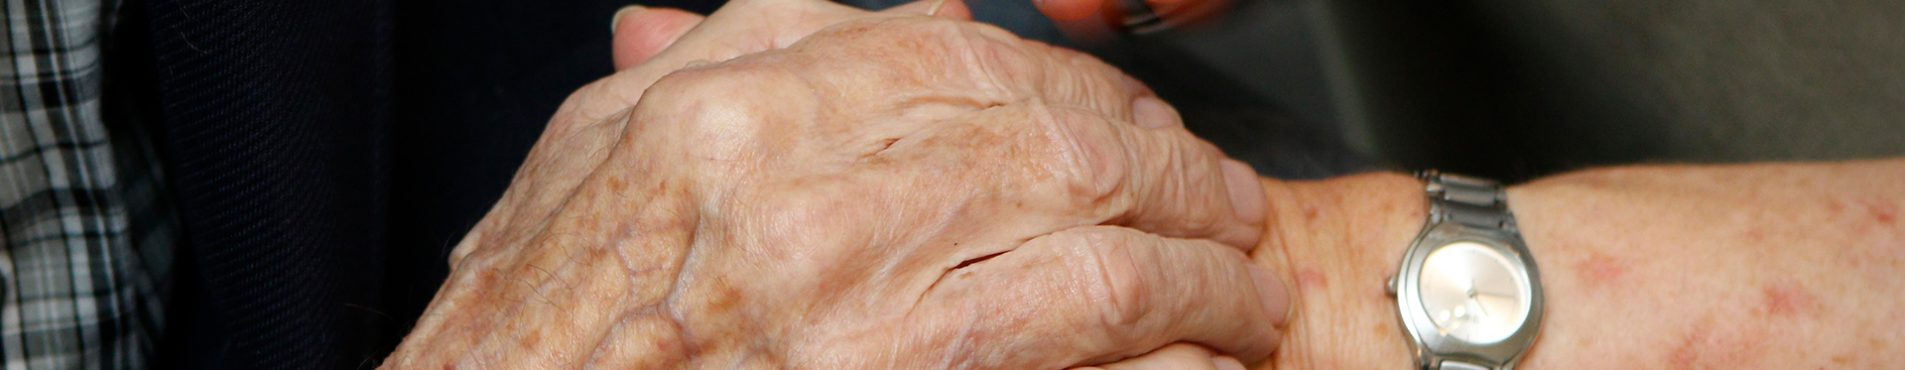 banner image of clasped hands